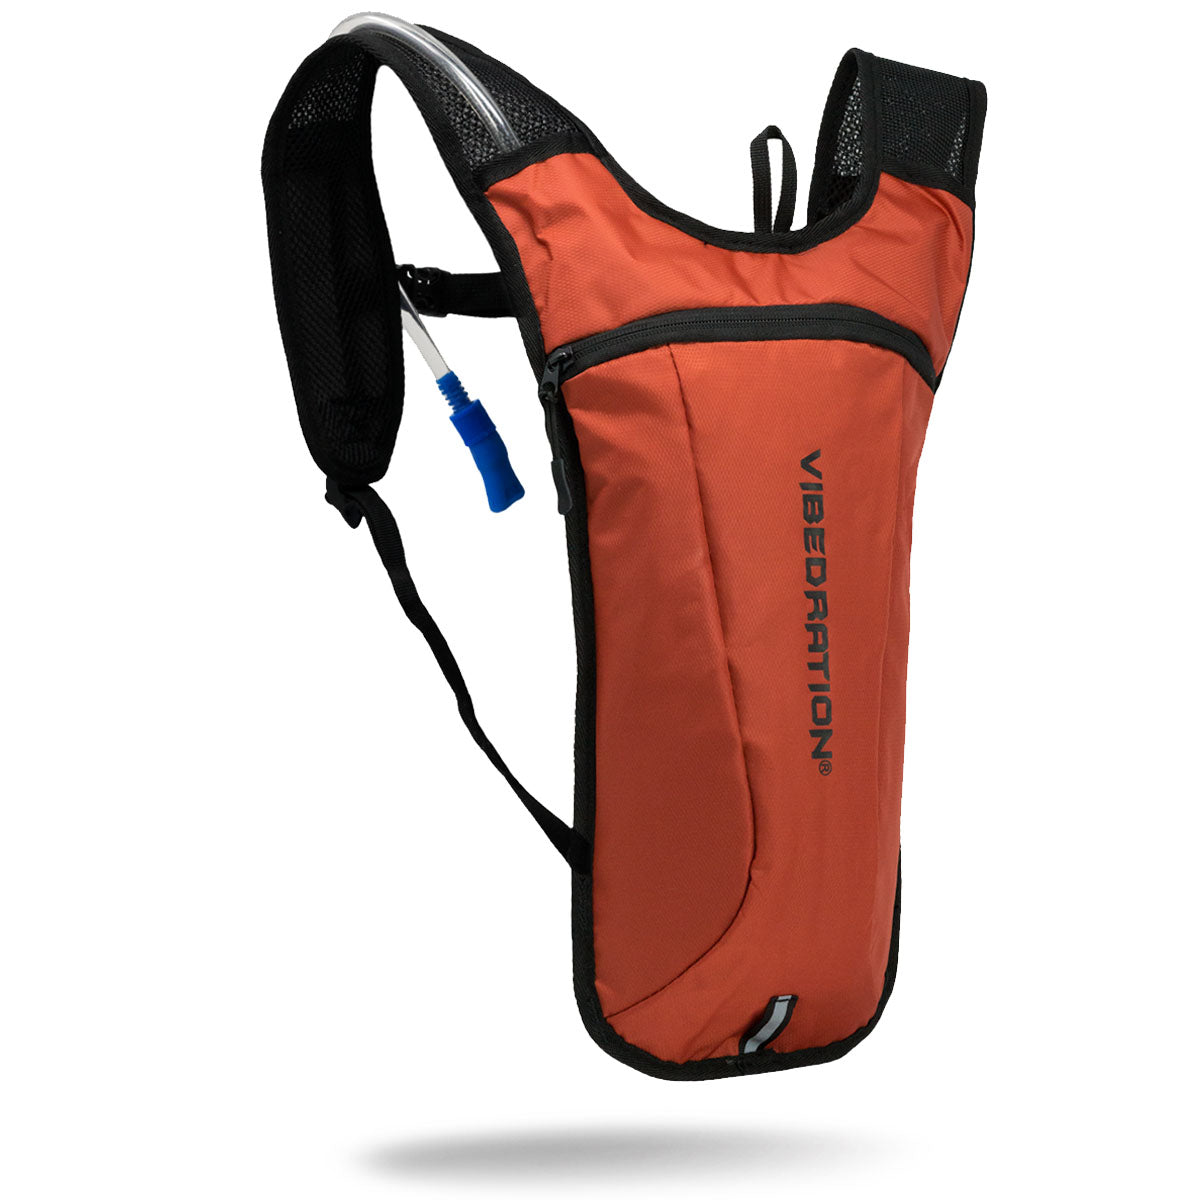 Black and orange lightweight 2 liter hydration backpack.